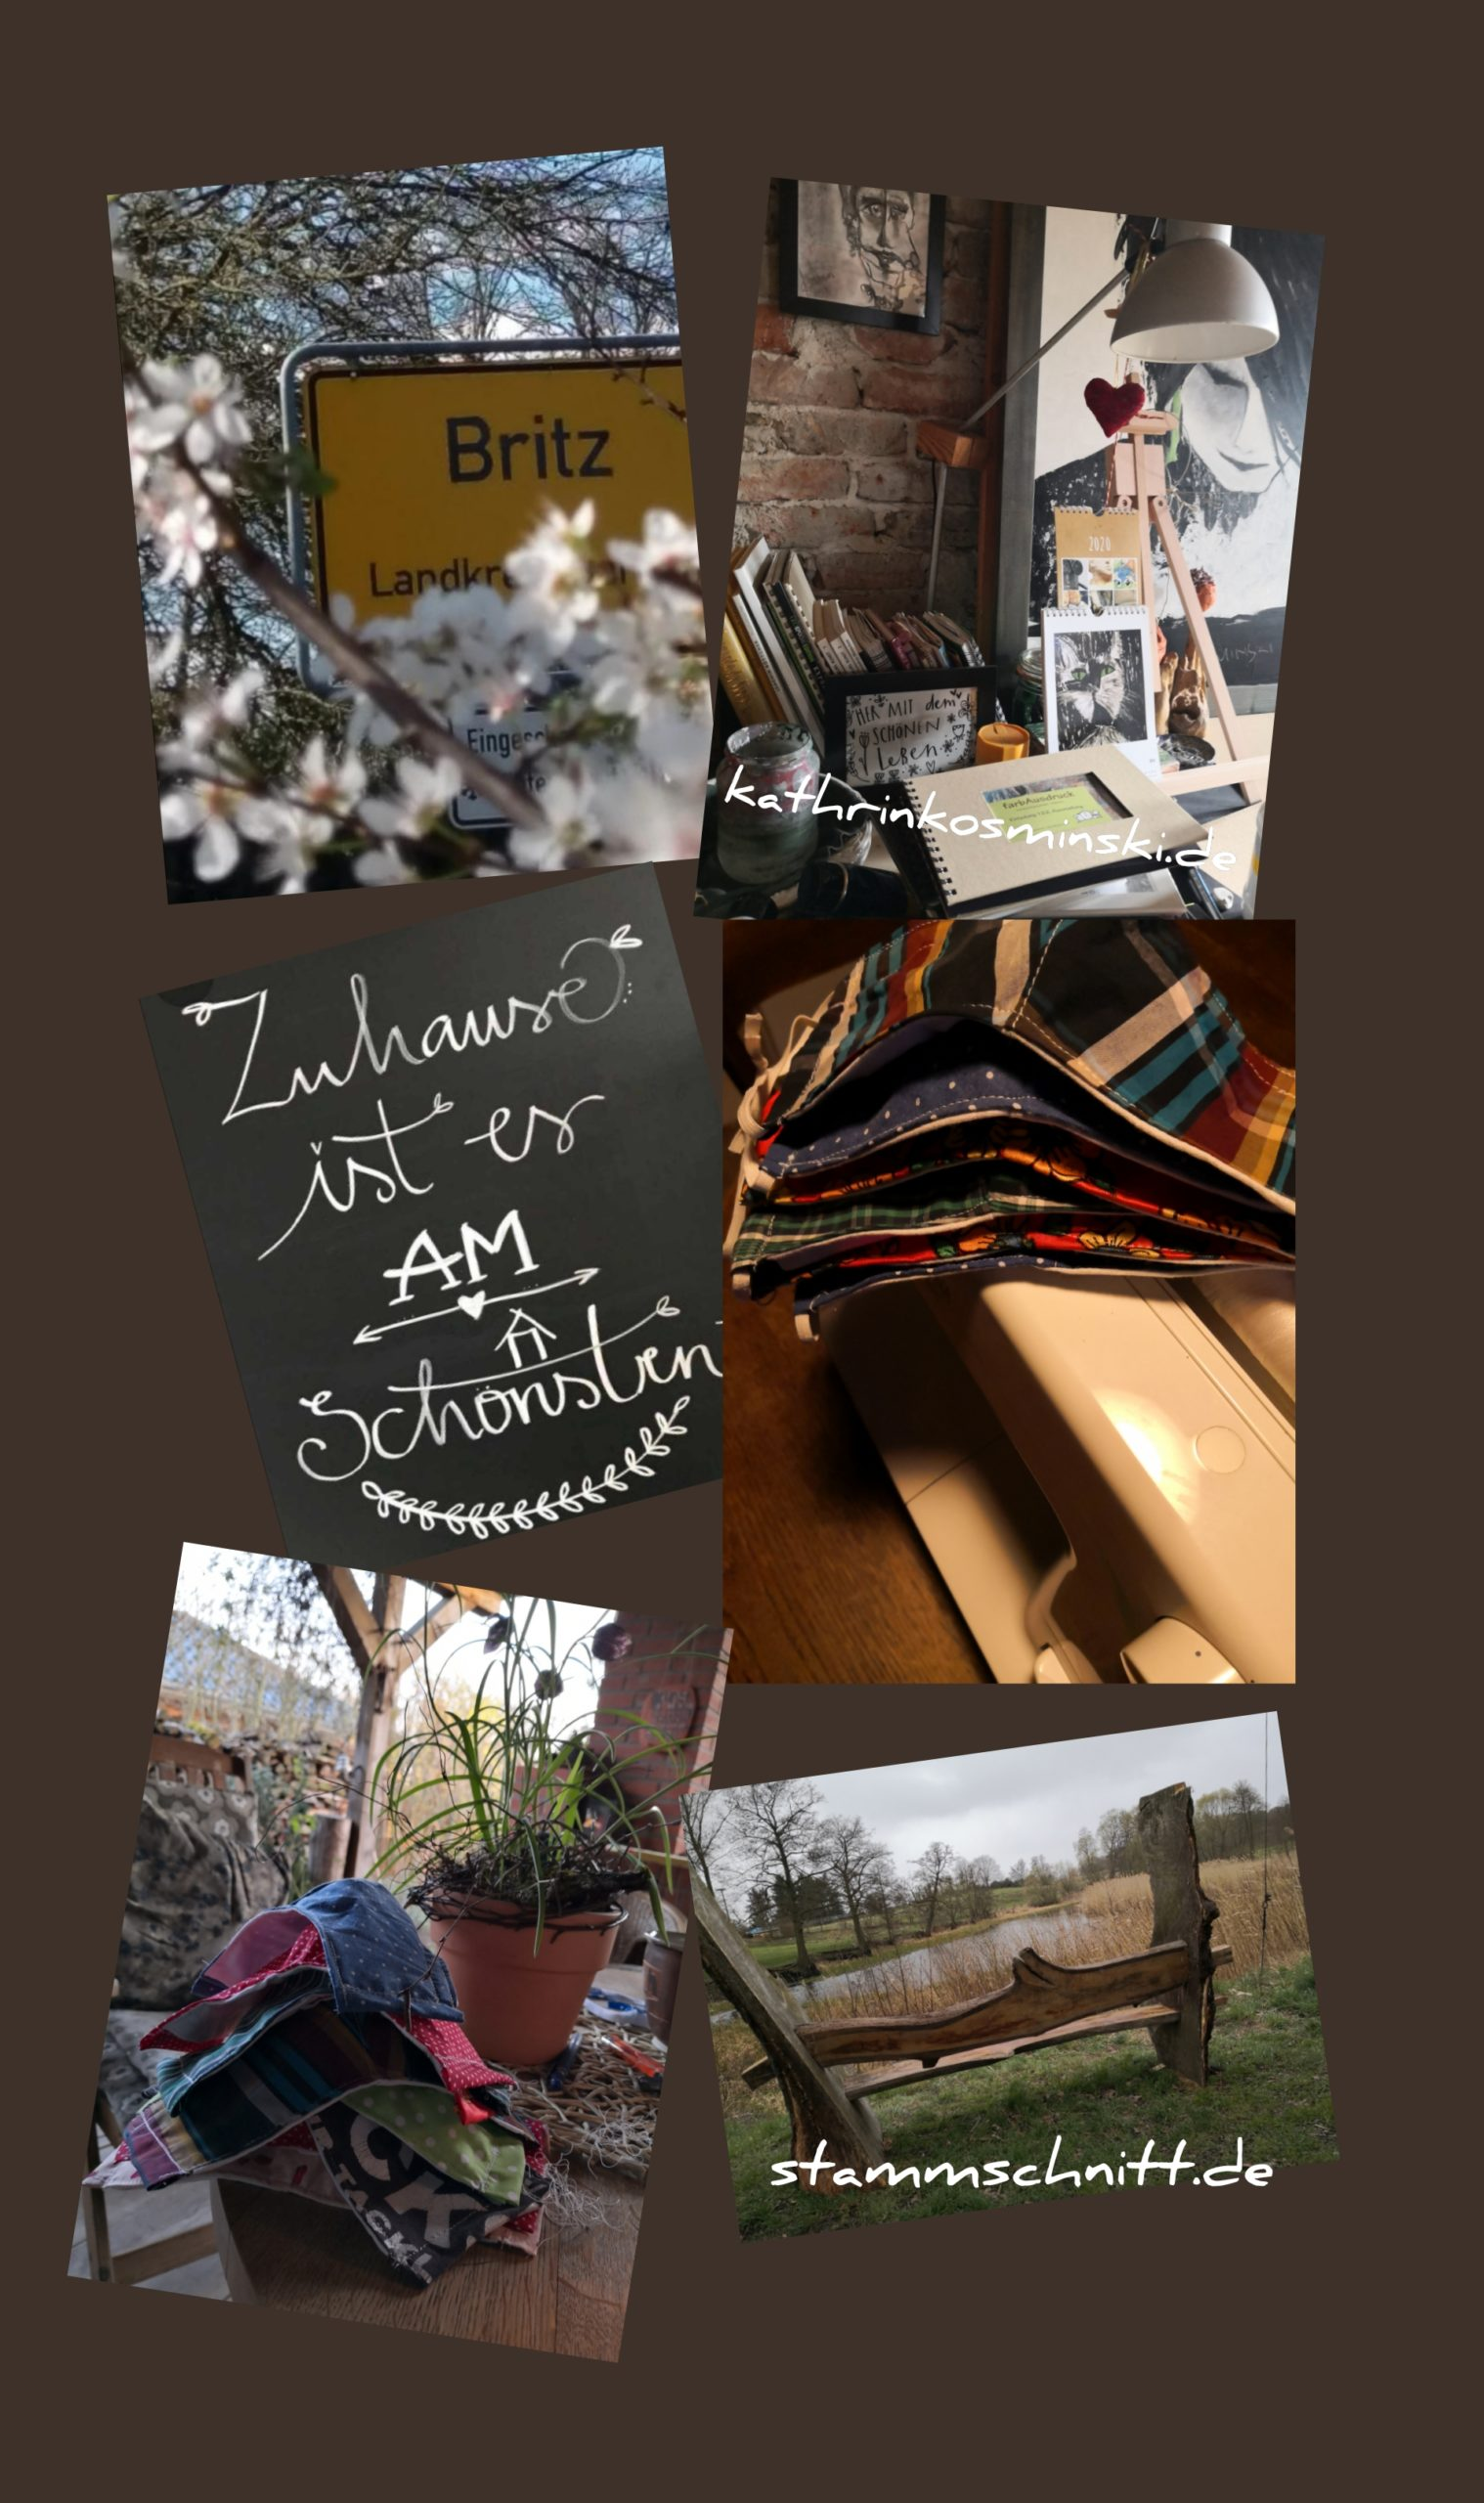 Kosminski-Collage-2020-04-07